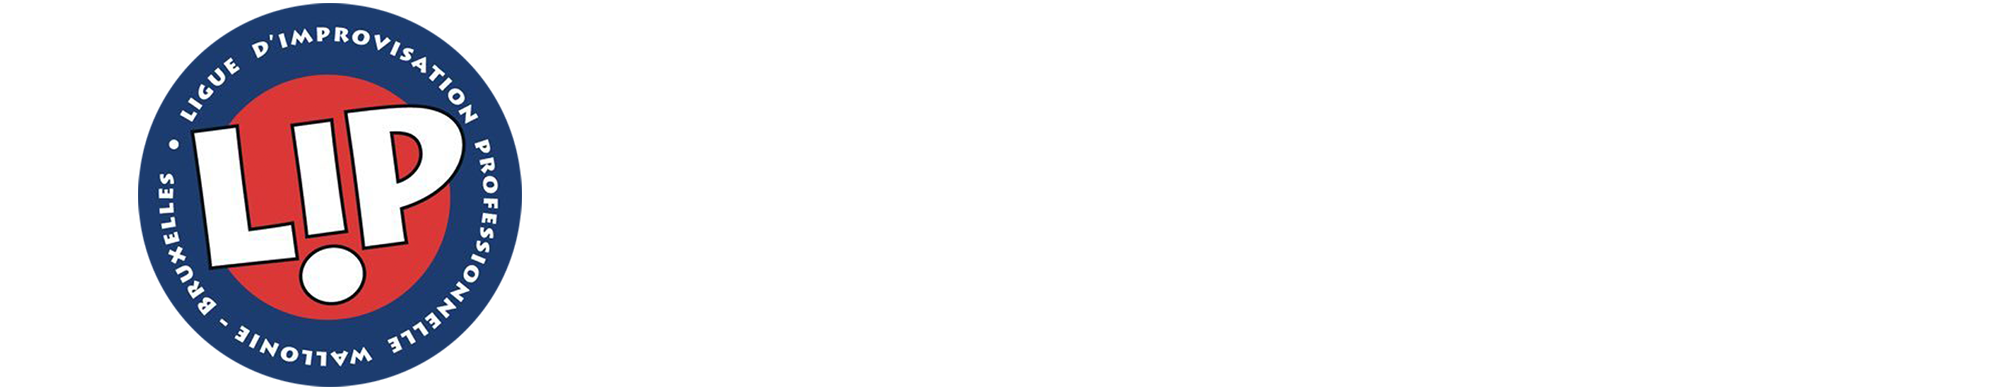 LIP – Ligue d'improvisation professionnelle Wallonie-Bruxelles